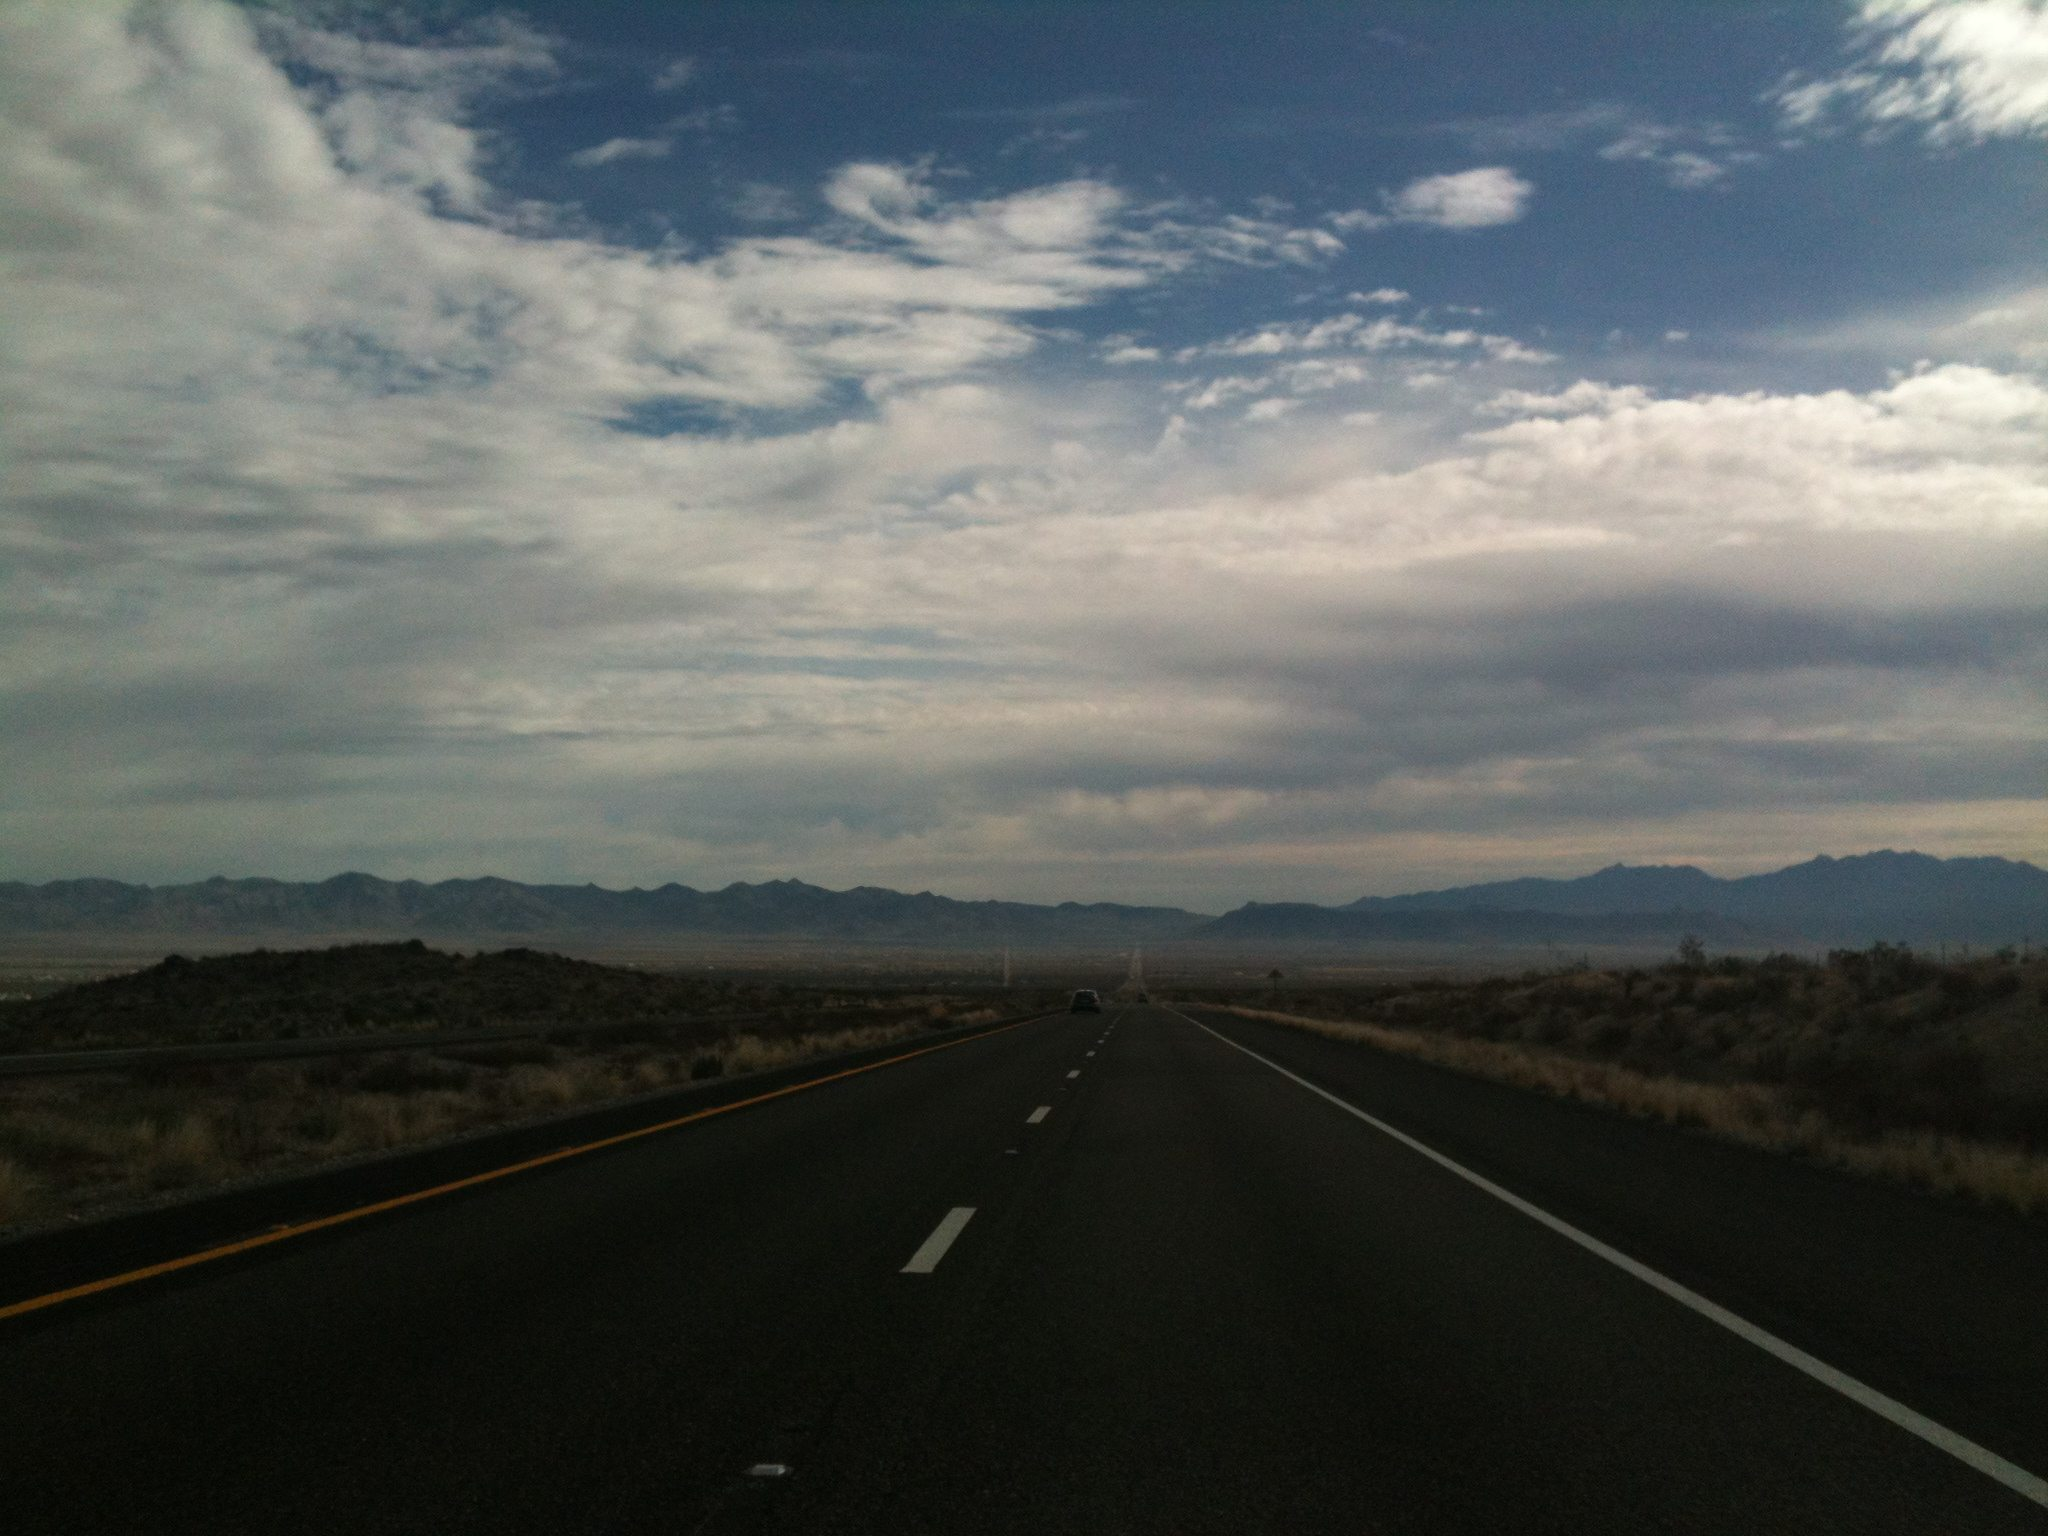 Highway in the desert with blue sky and clouds